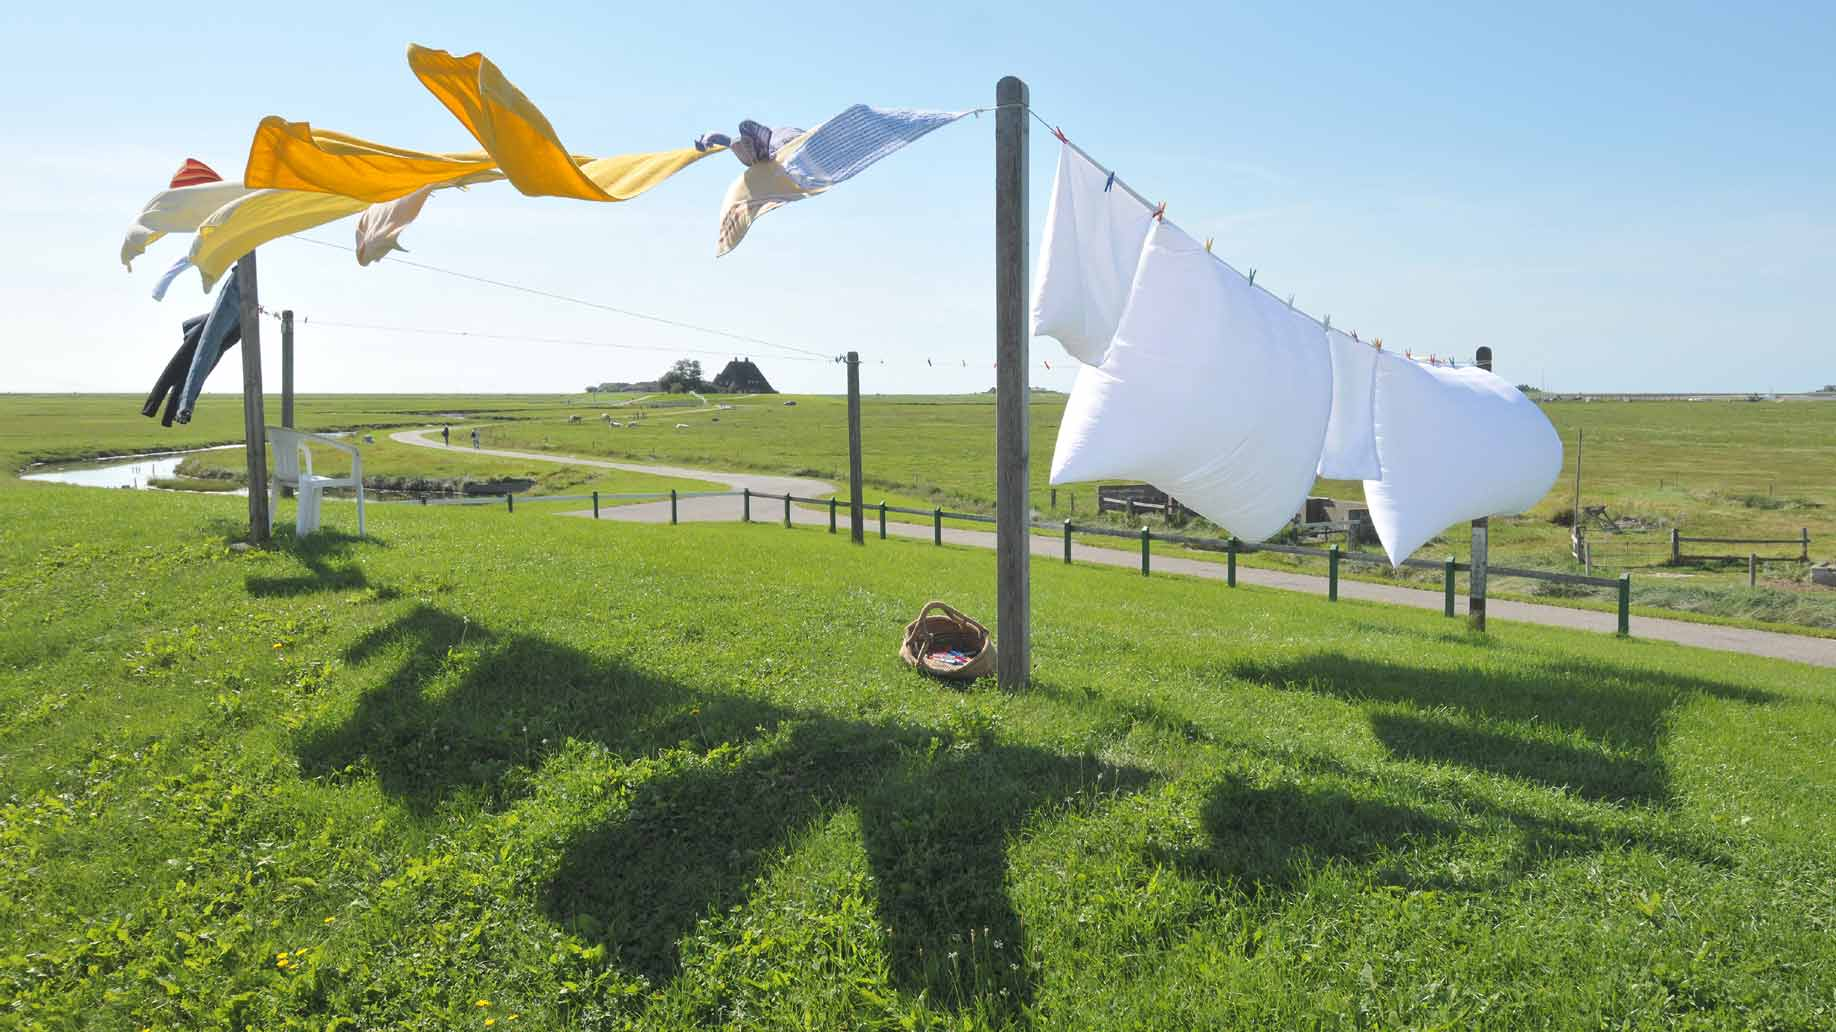 clothesline drying clothes